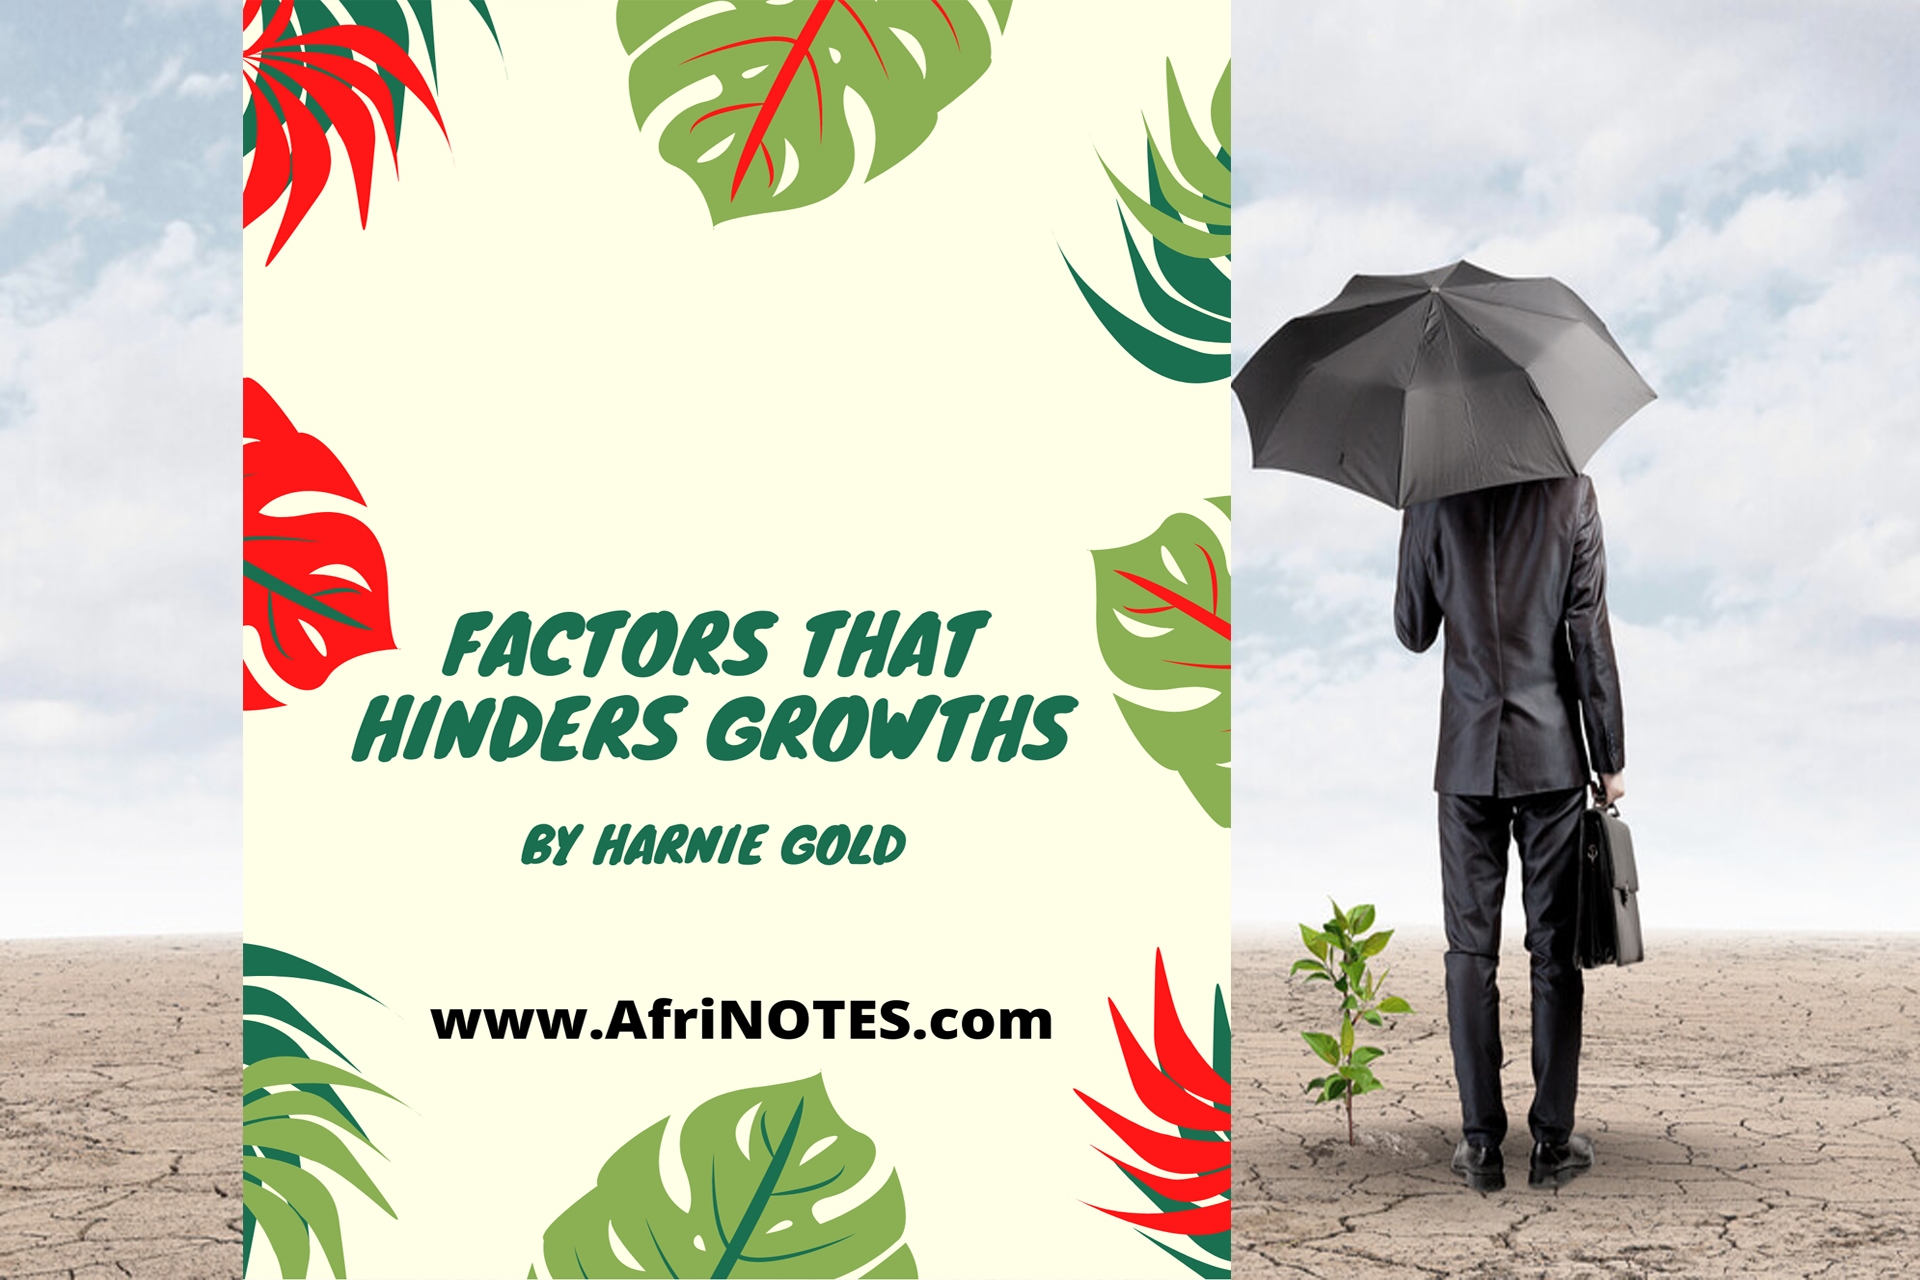 Factors That Hinders Growths